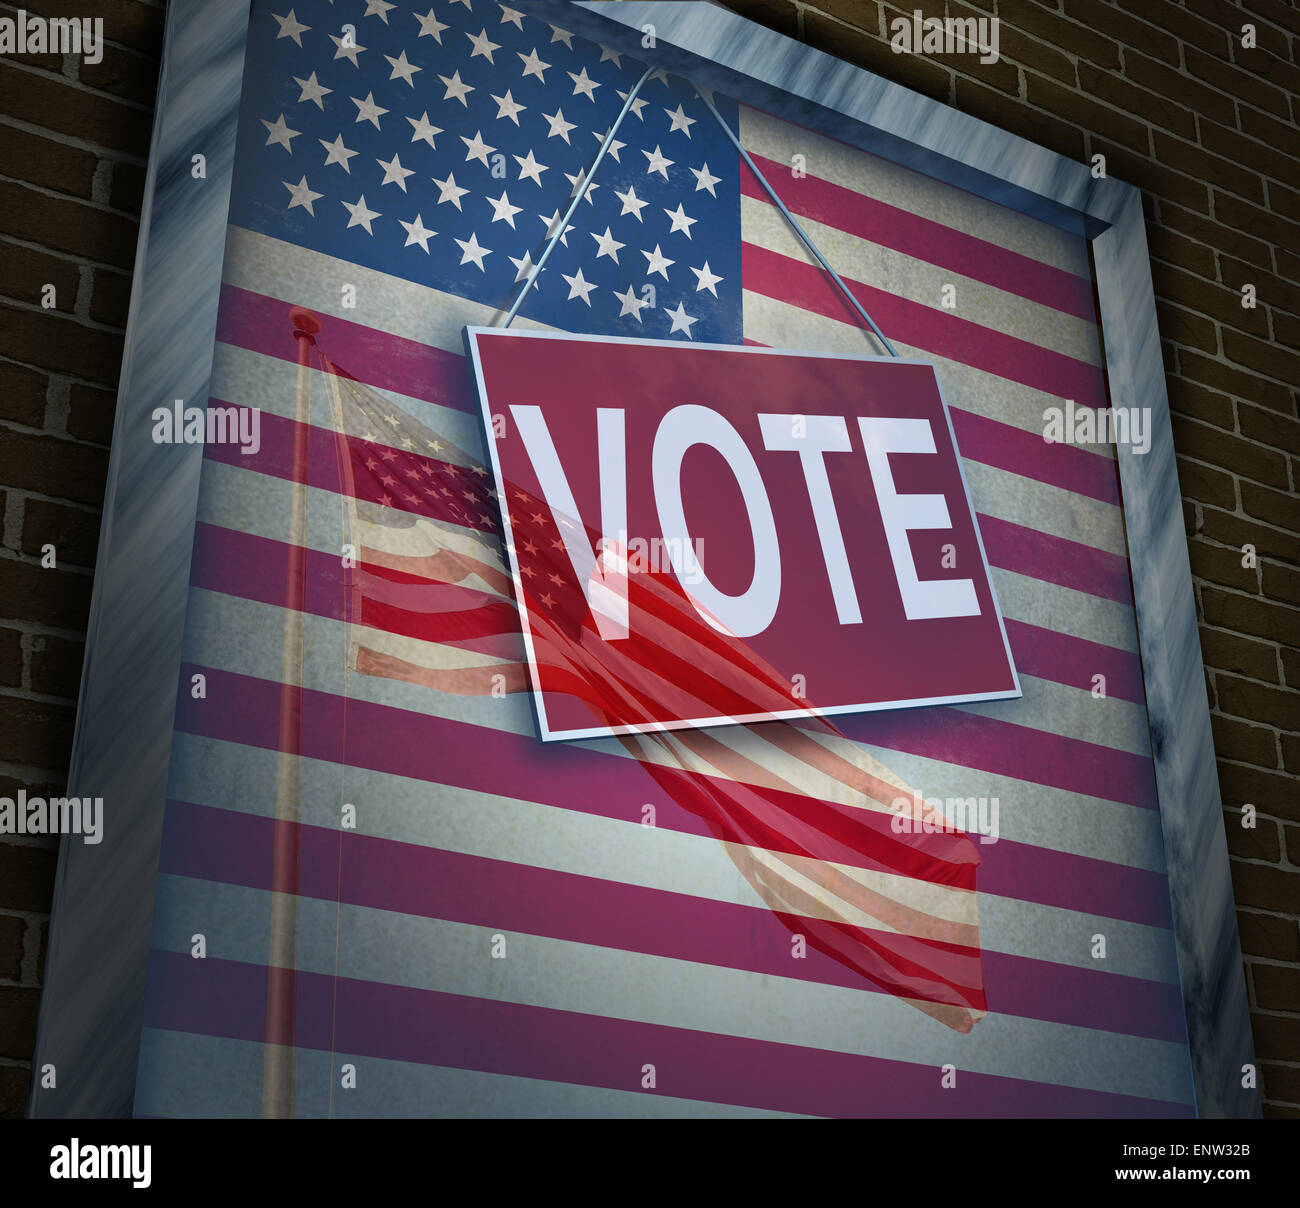 American vote concept and United States elections symbol as a window with a US flag with a voting sign as an icon - Stock Image